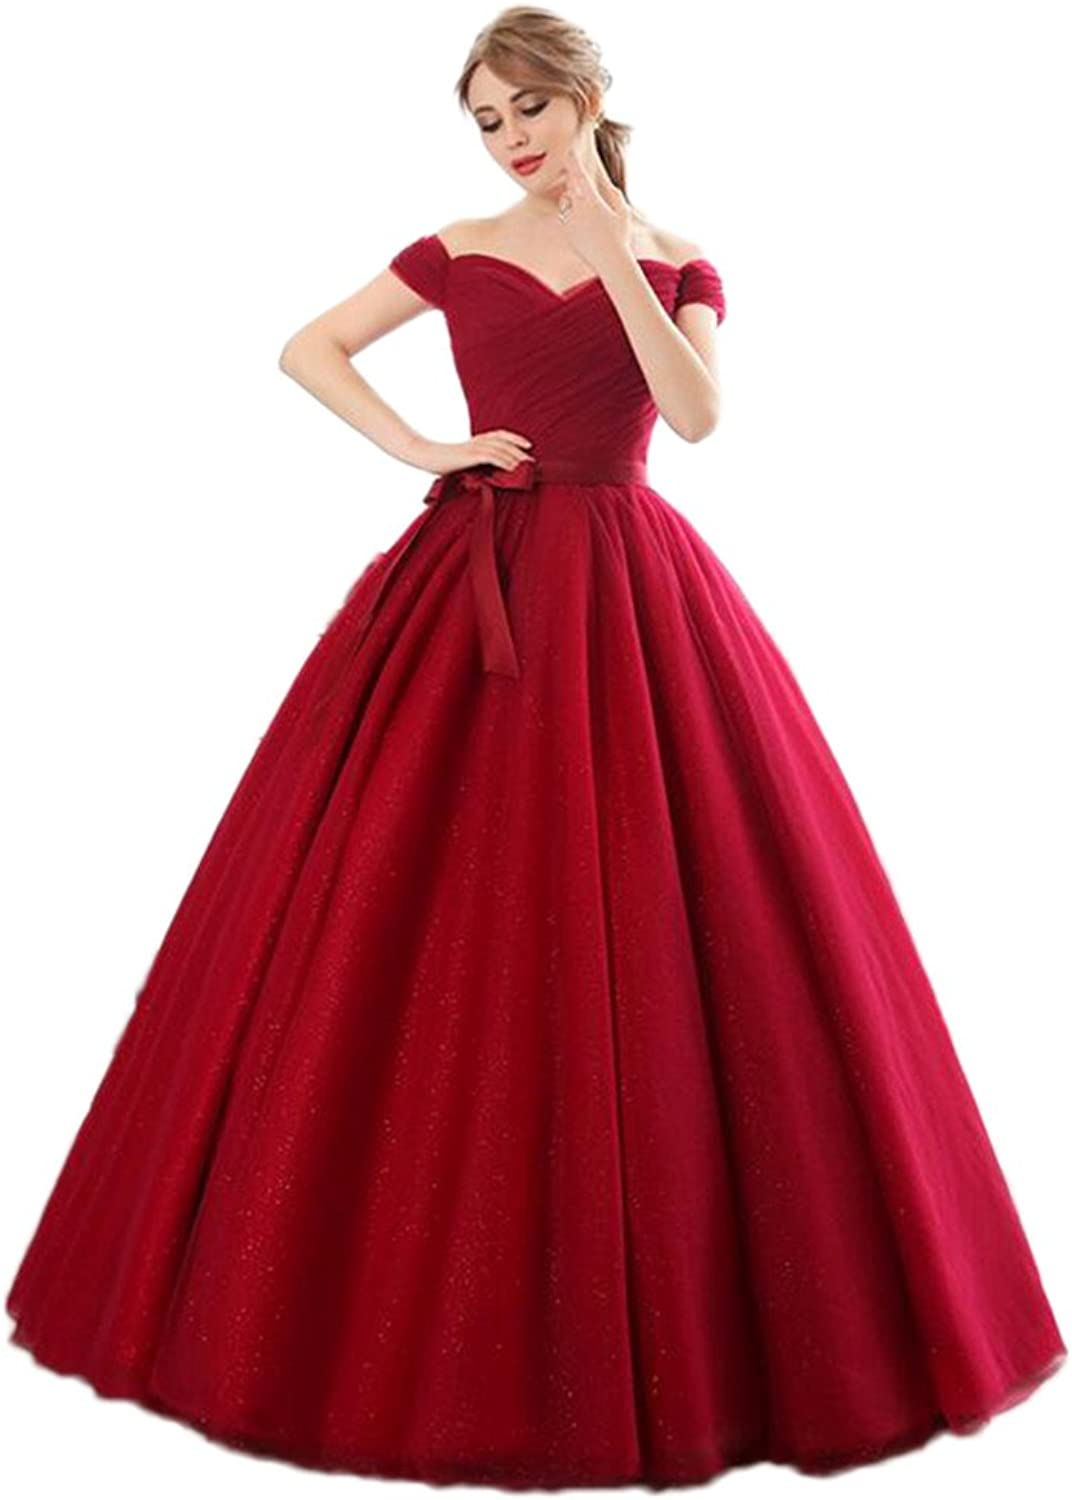 Kaitaijidian Women's Red Ball Gown FloorLength Quinceanera Dresses